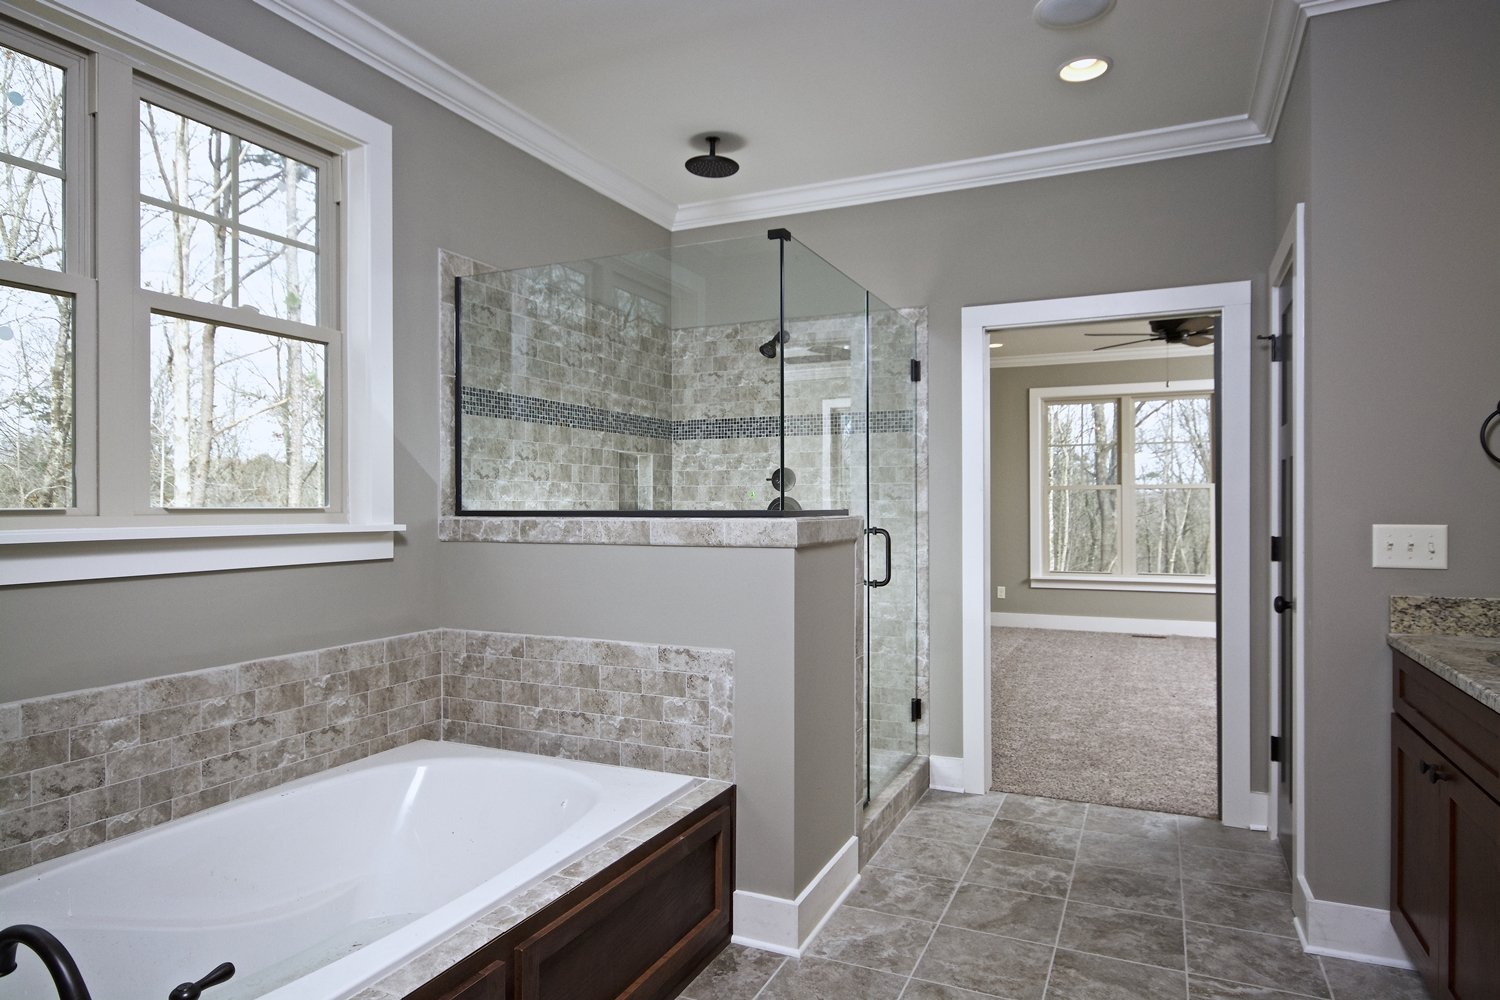 Home Contractor Services In Chattanooga TN Blazek Construction - Bathroom remodel chattanooga